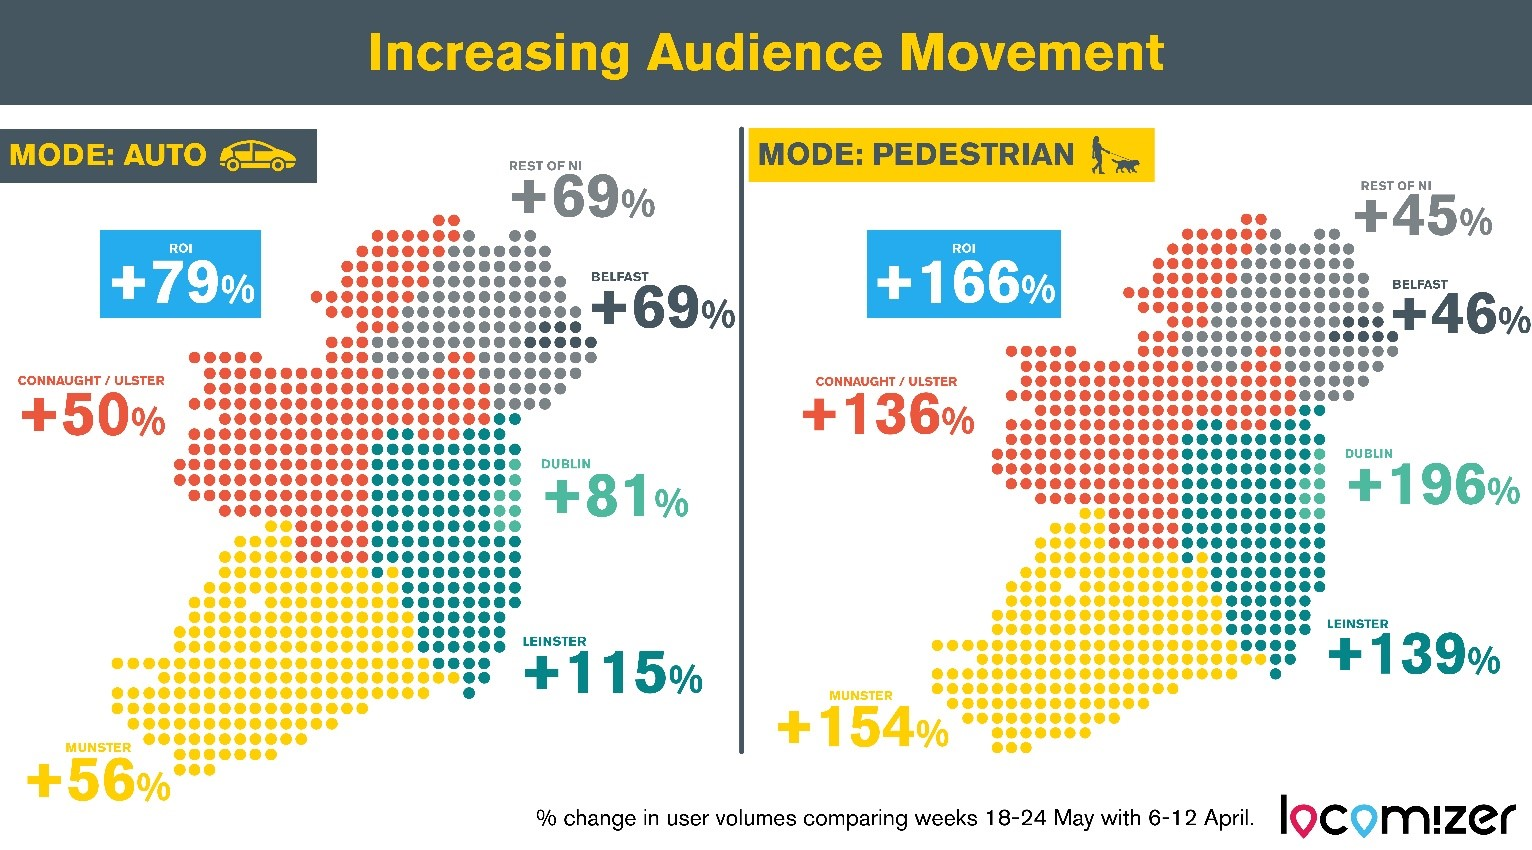 Increasing Audience movement map for IOI